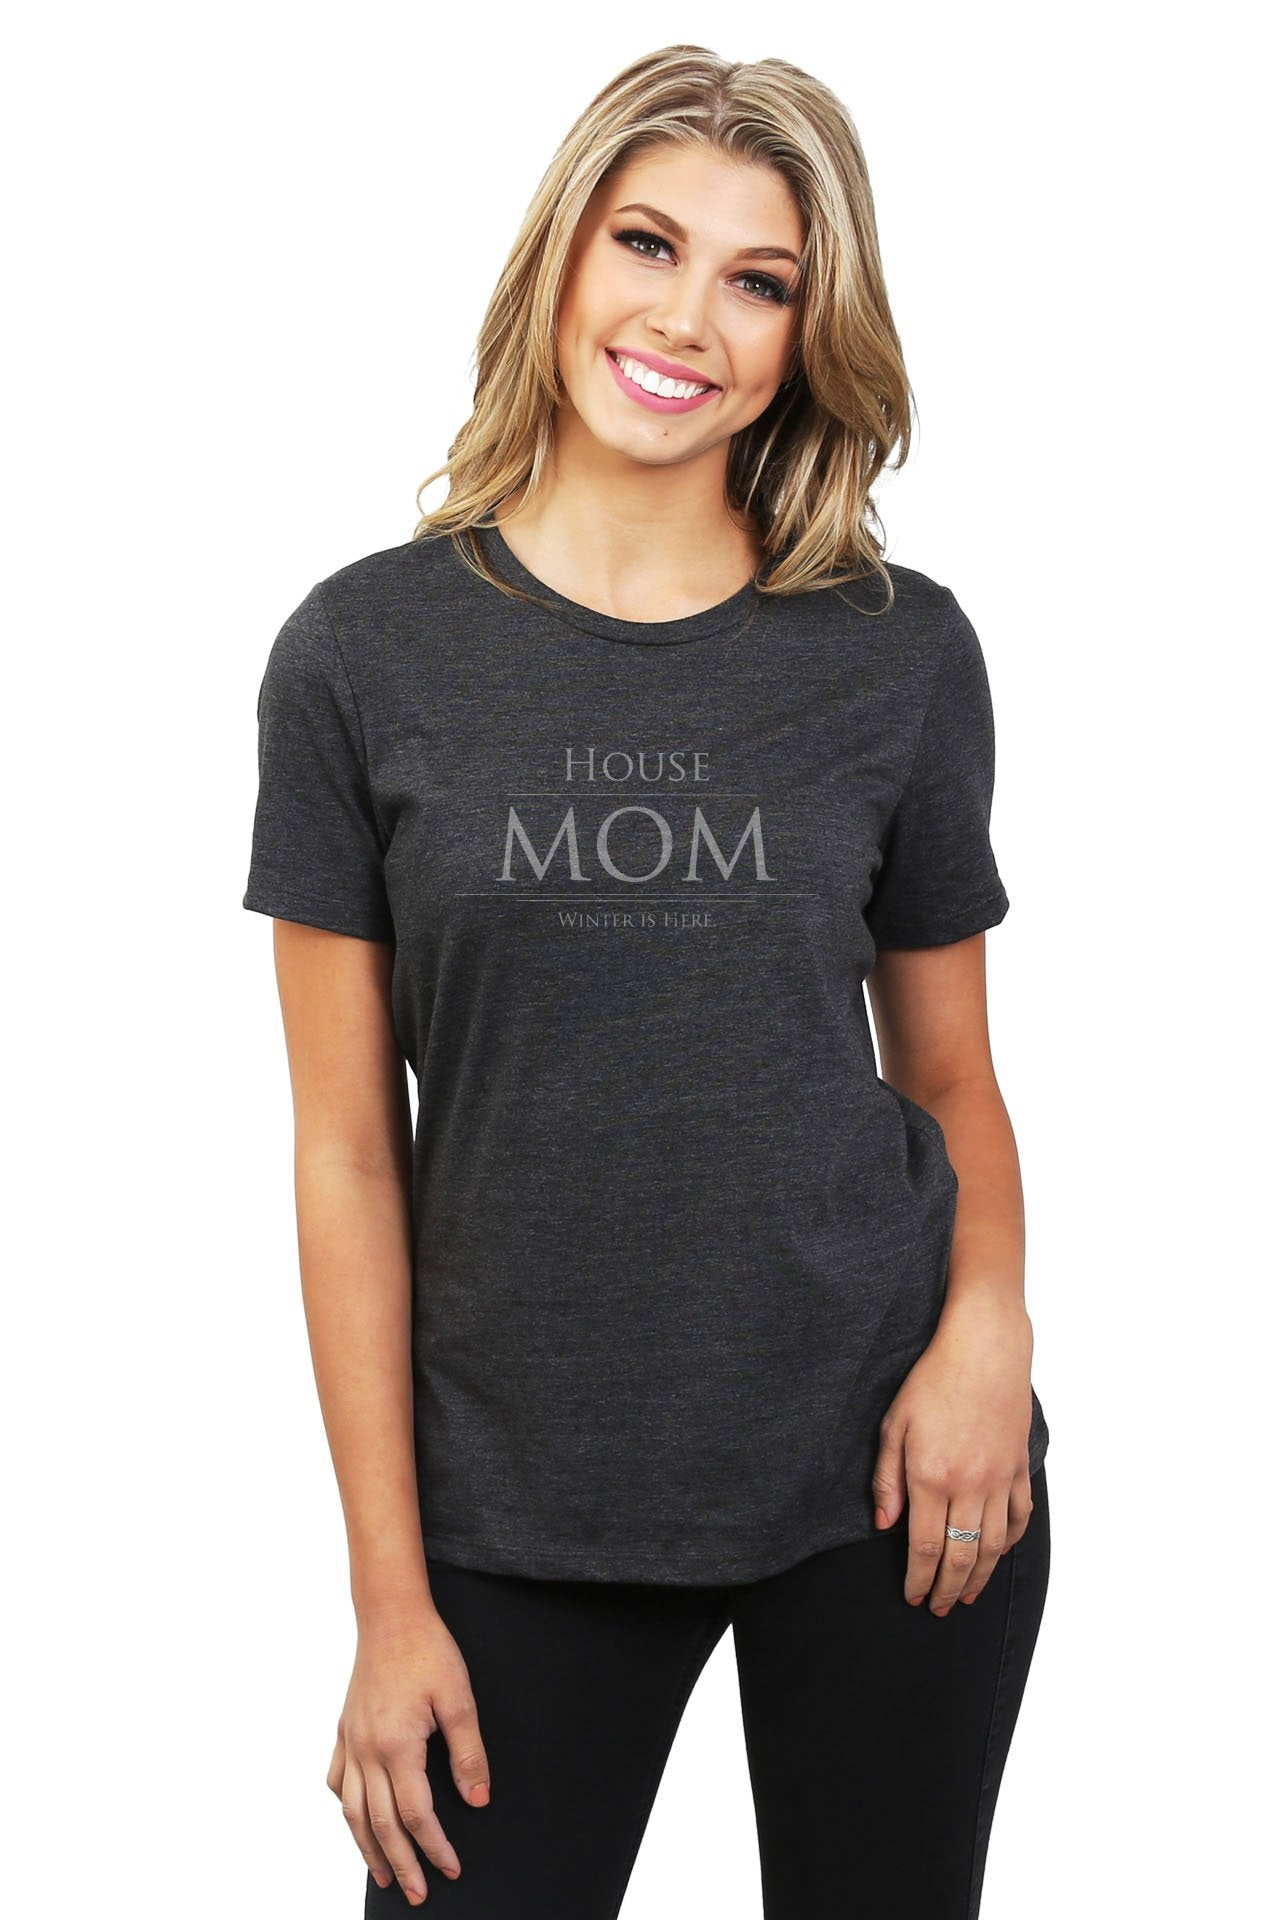 House Mom Winter Is Here Women's Relaxed Crewneck T-Shirt Top Tee Charcoal Grey